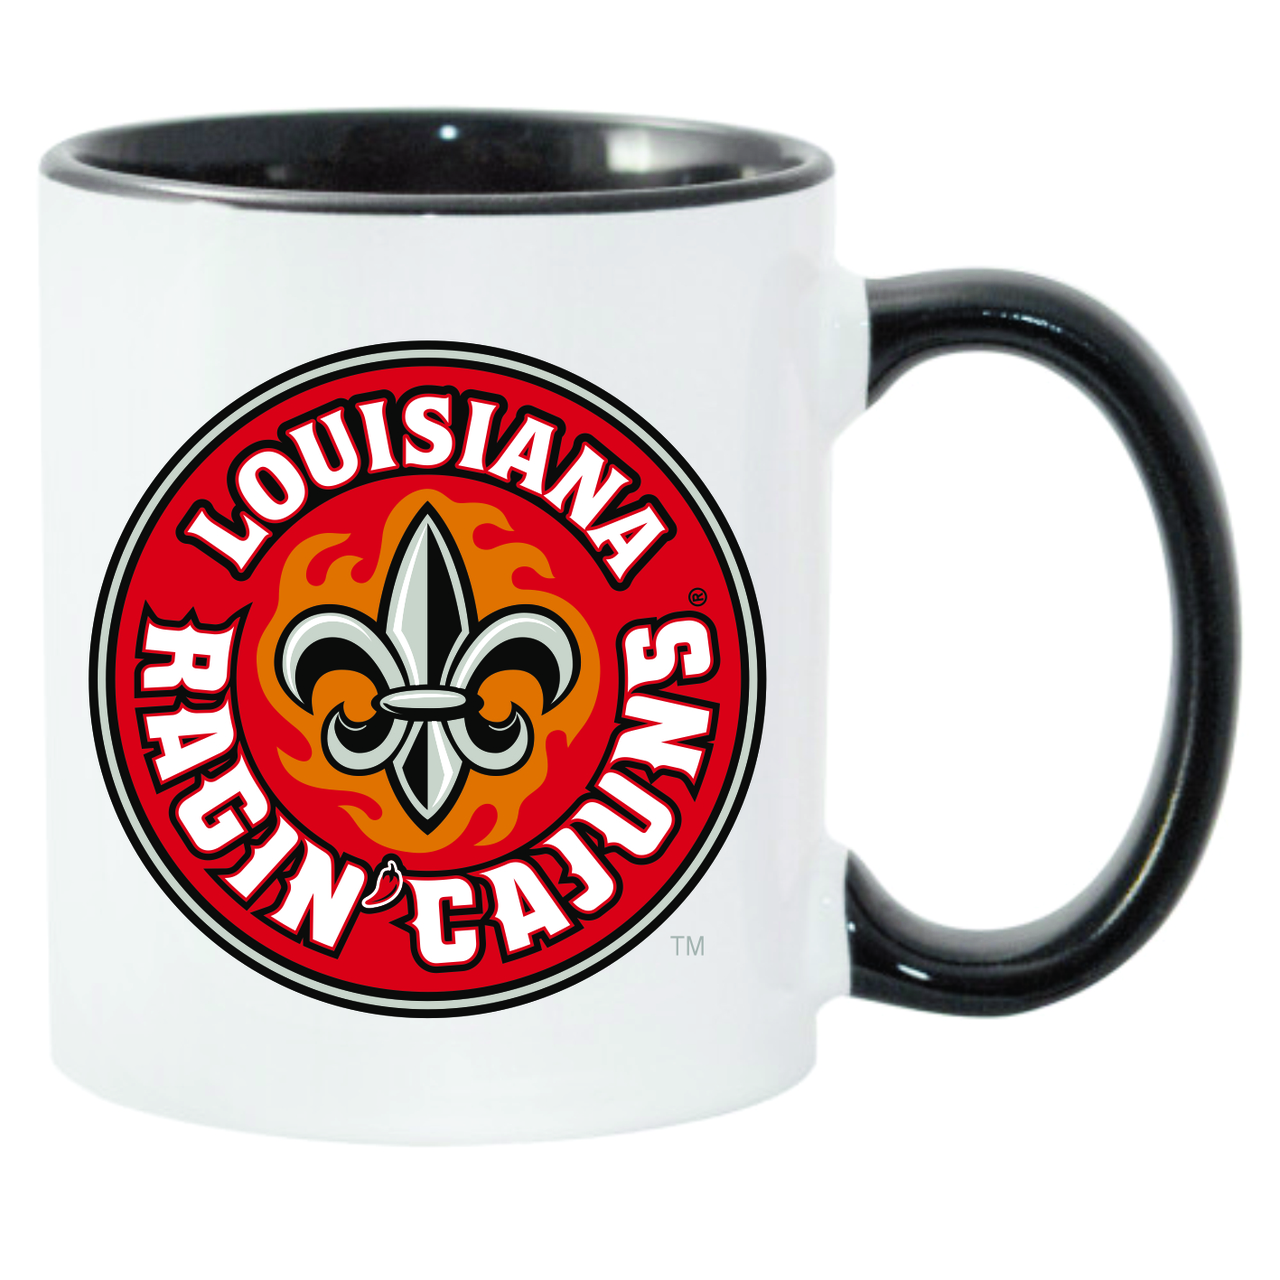 Louisiana Ragin' Cajuns Black & White C-Handle Coffee Mug